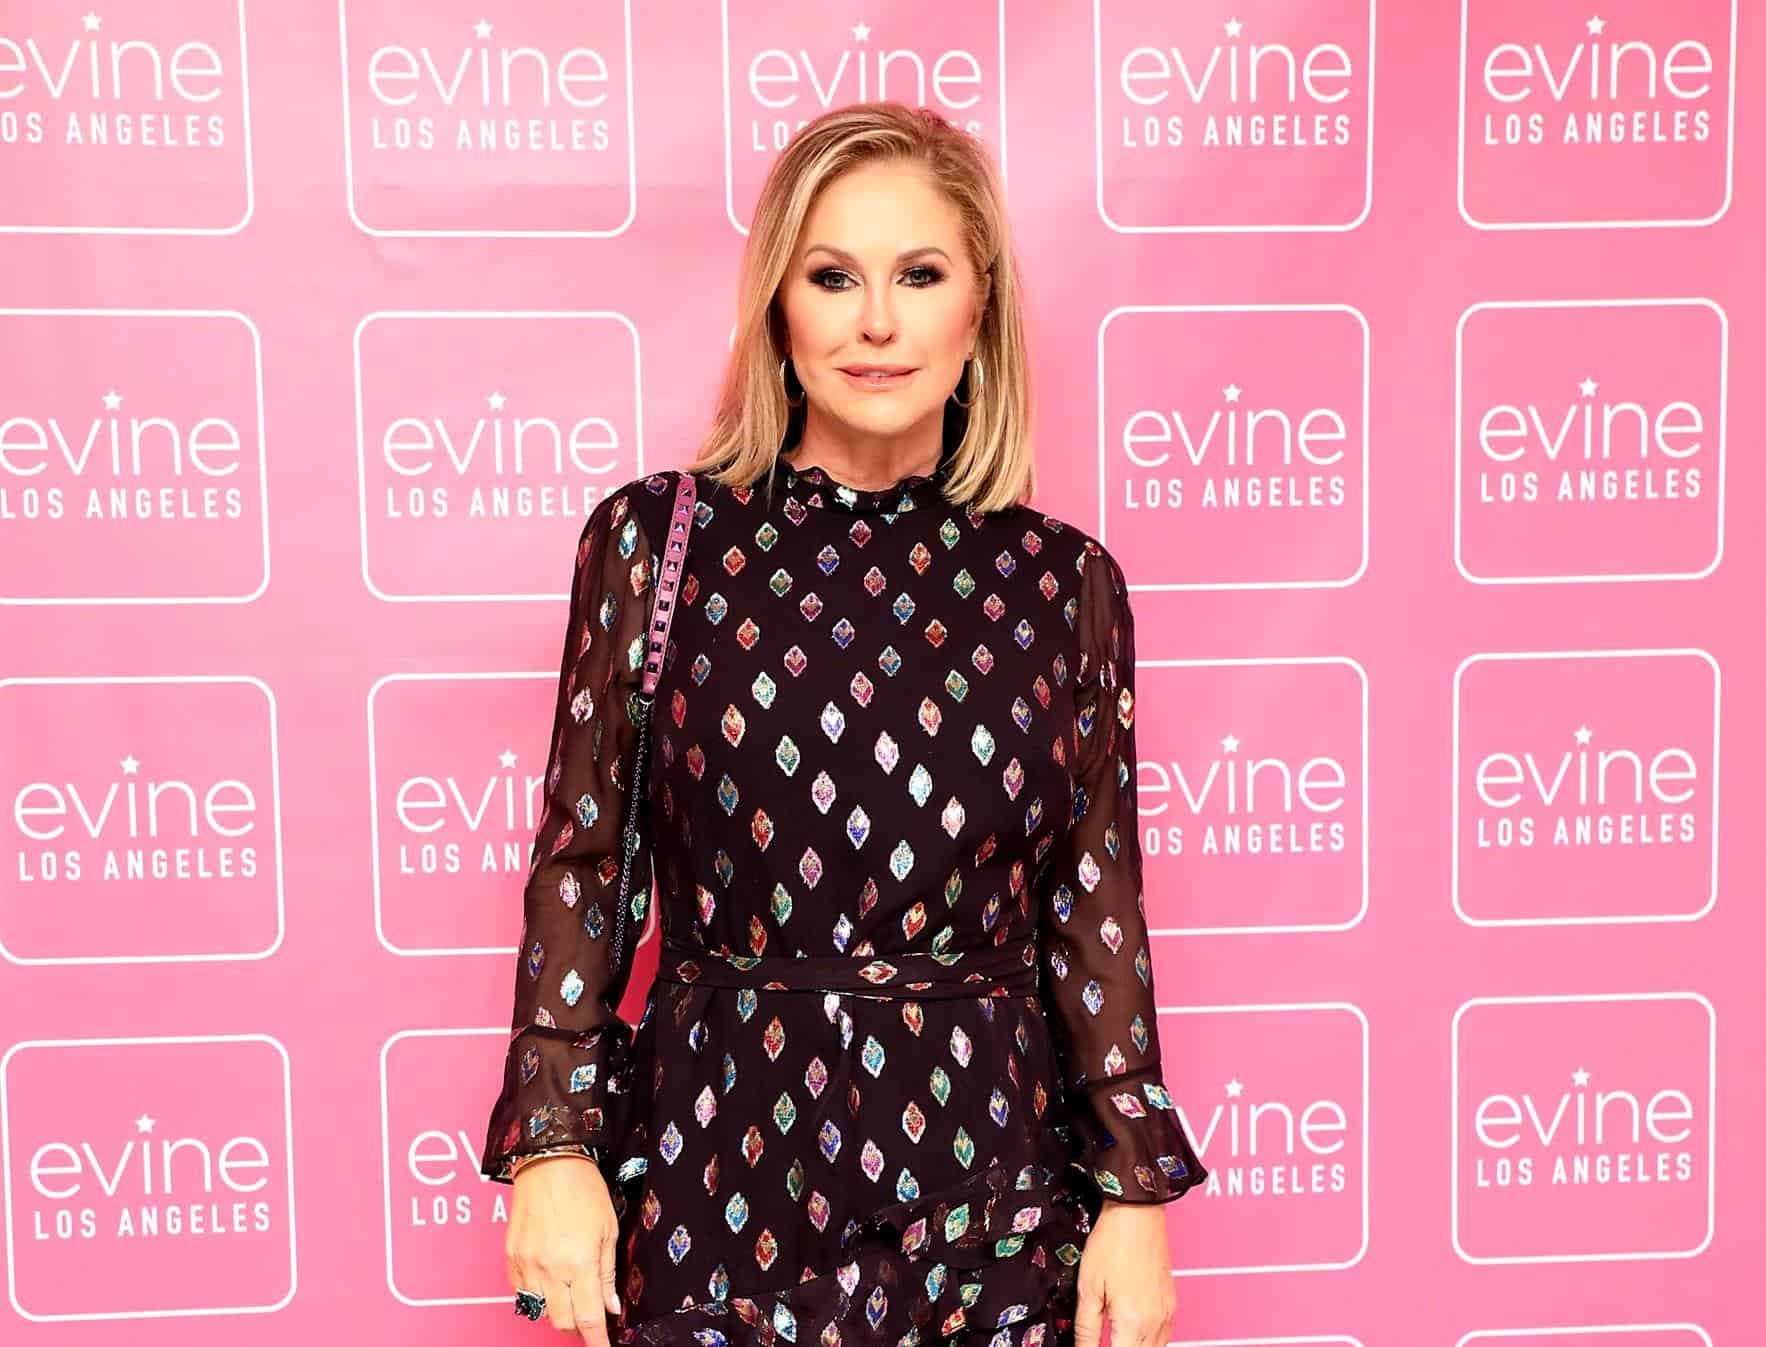 """Kathy Hilton Officially Joins the RHOBH in """"Friend"""" Role as Sources Confirm She Signed Her Contract"""